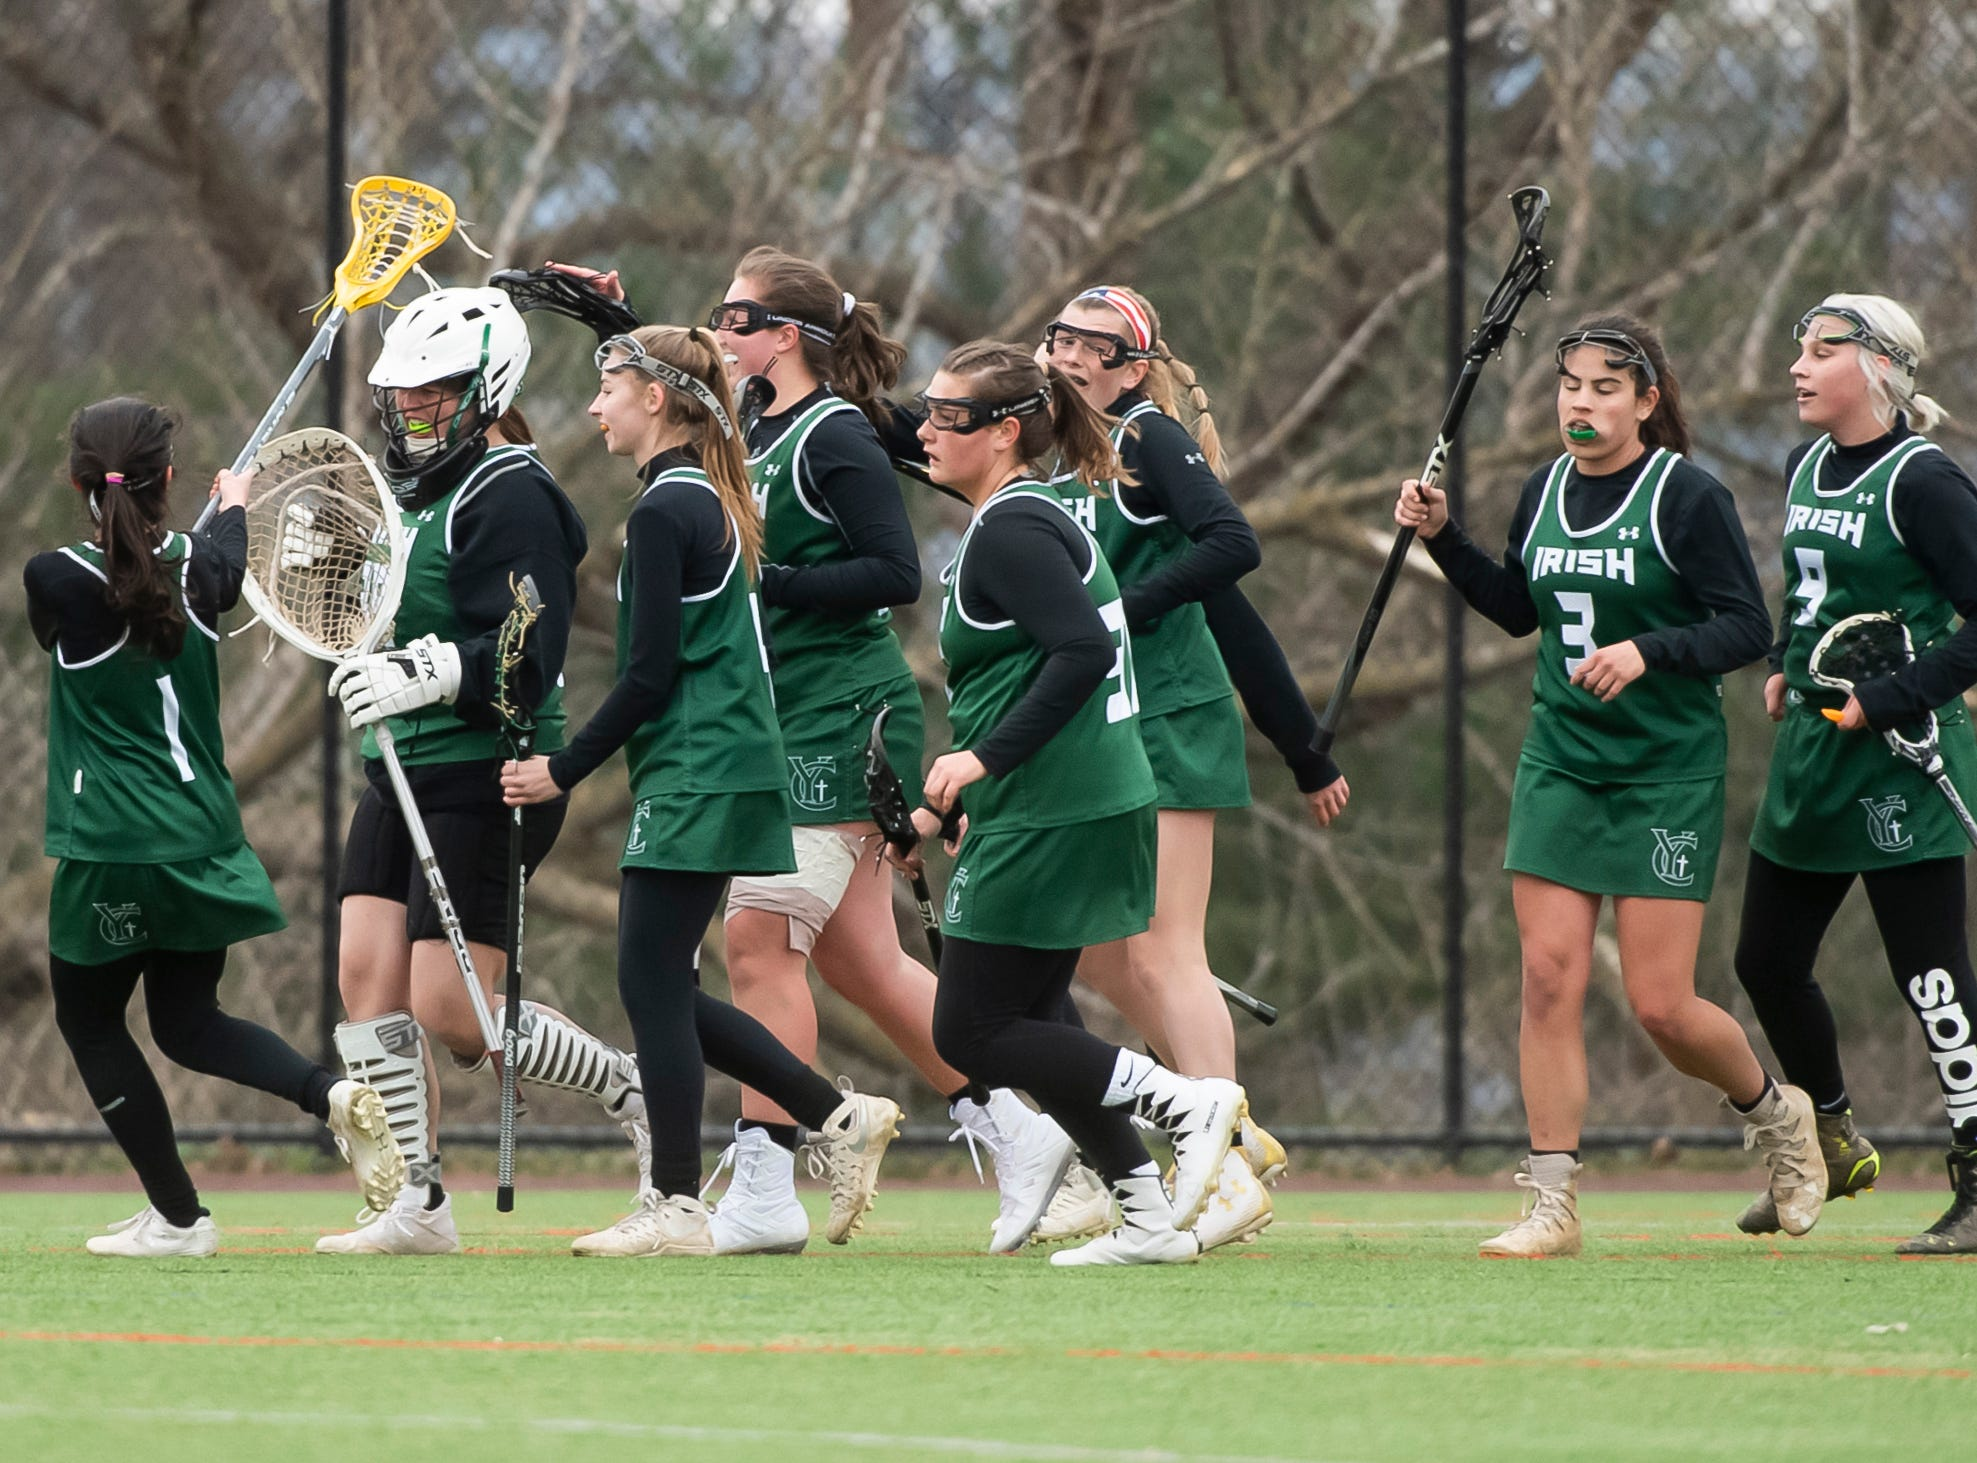 The York Catholic girls lacrosse team celebrate after defeating South Western 19-7 on Tuesday, April 2, 2019.